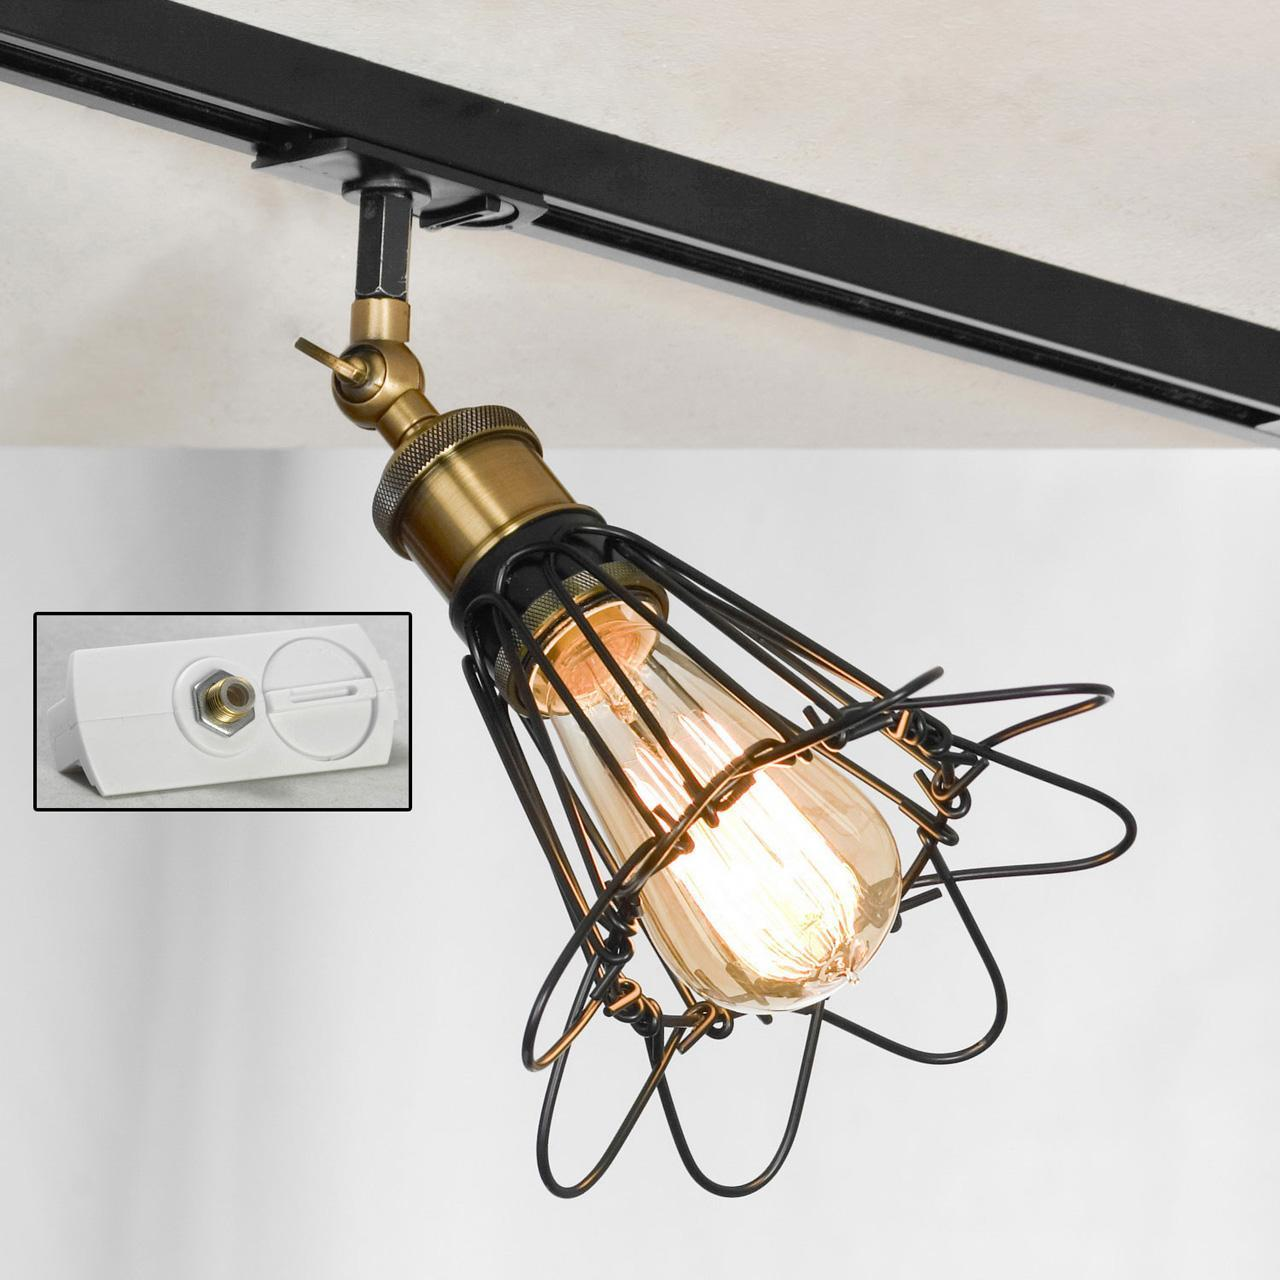 Трековый светильник однофазный Lussole LOFT Track Lights LSP-9109-TAW edison bulb loft style vintage pendant industrial light lamp with 3 lights for dining room